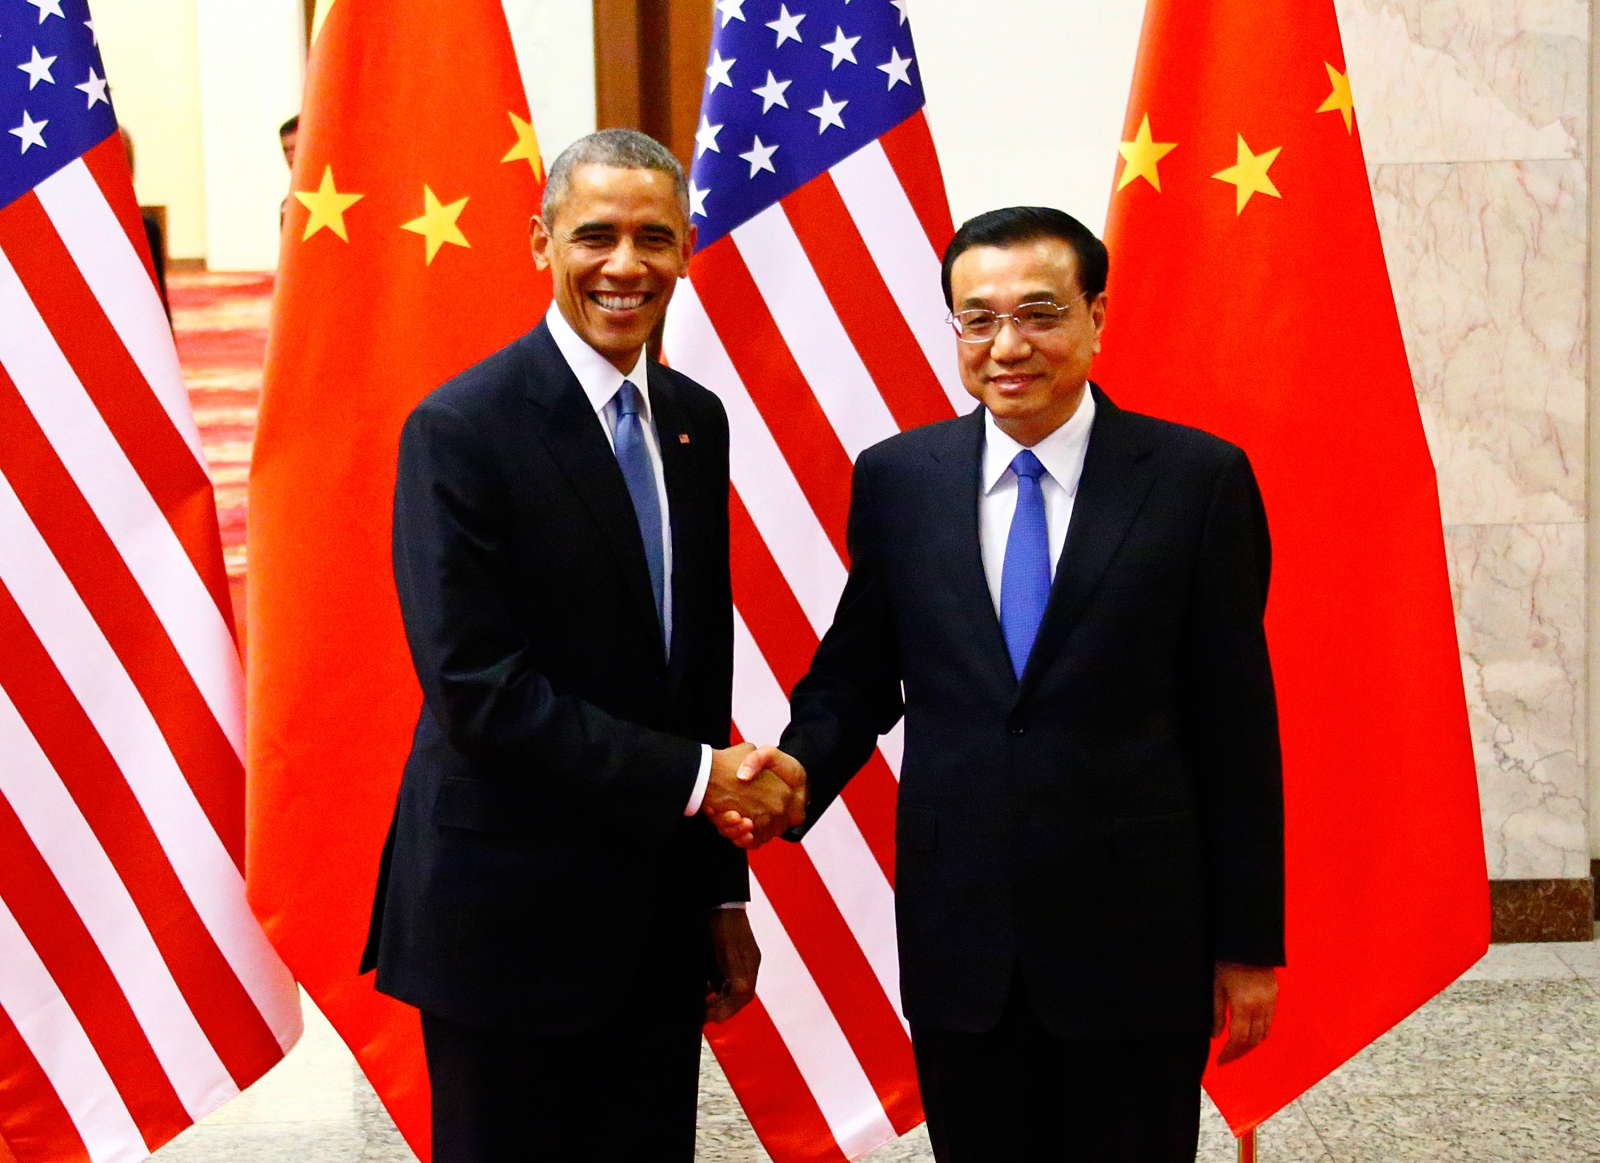 Barack Obama and Premier Li Keqiang